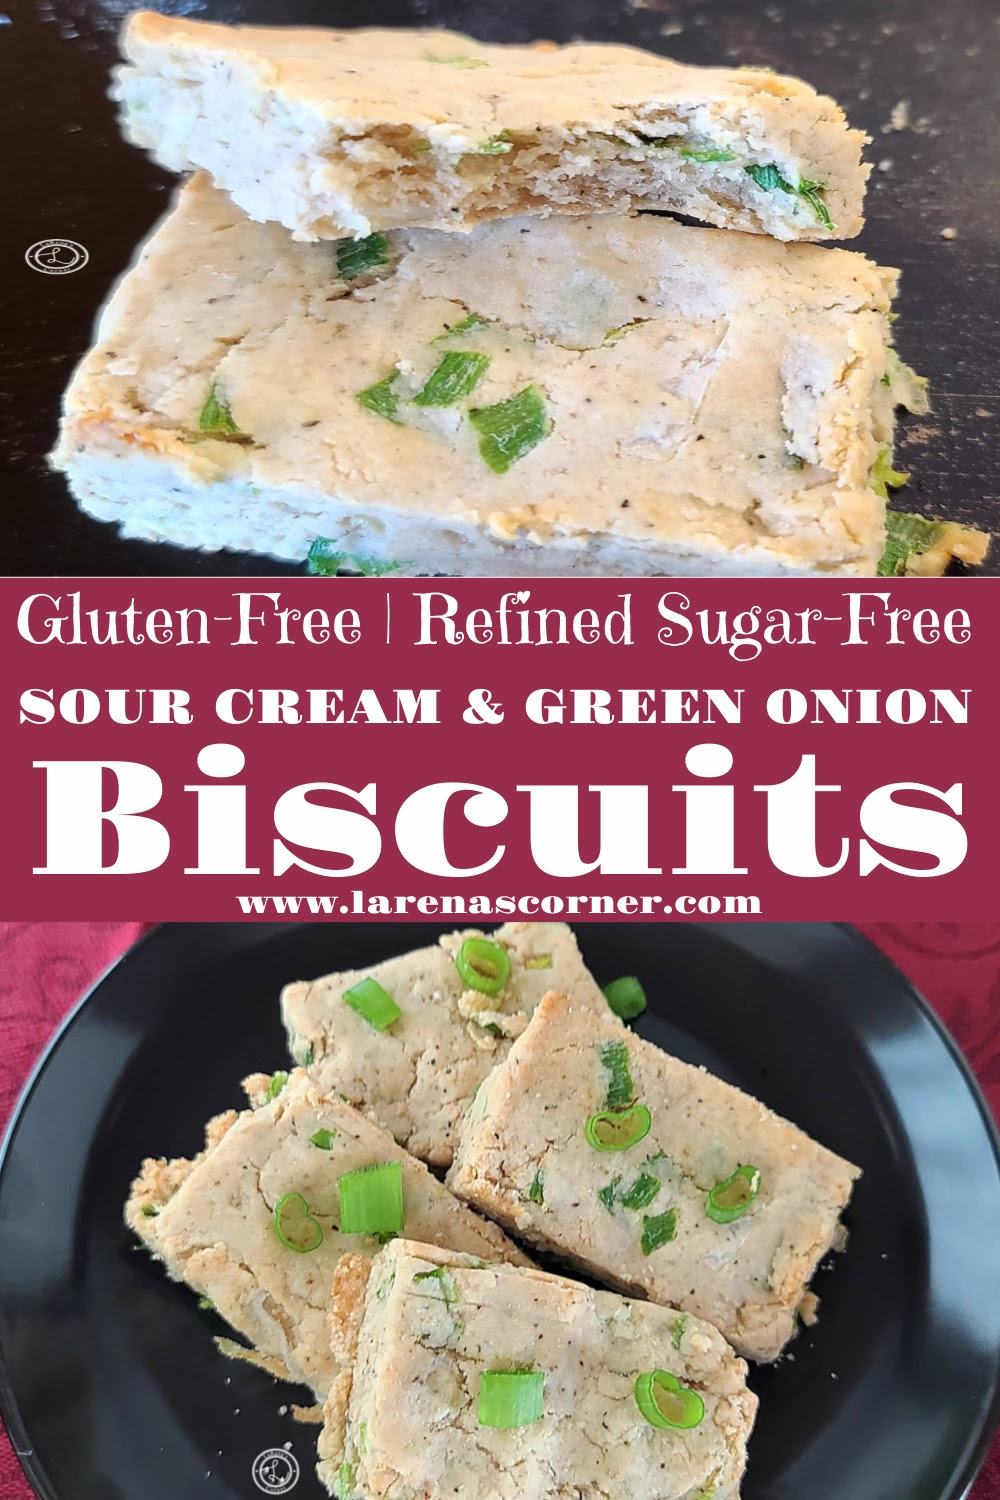 Gluten-Free Sour Cream & Green Onion Biscuits. 2 pictures. One of 4 biscuits on a plate. Second picture is a close up of two biscuits with a bite take out of one.